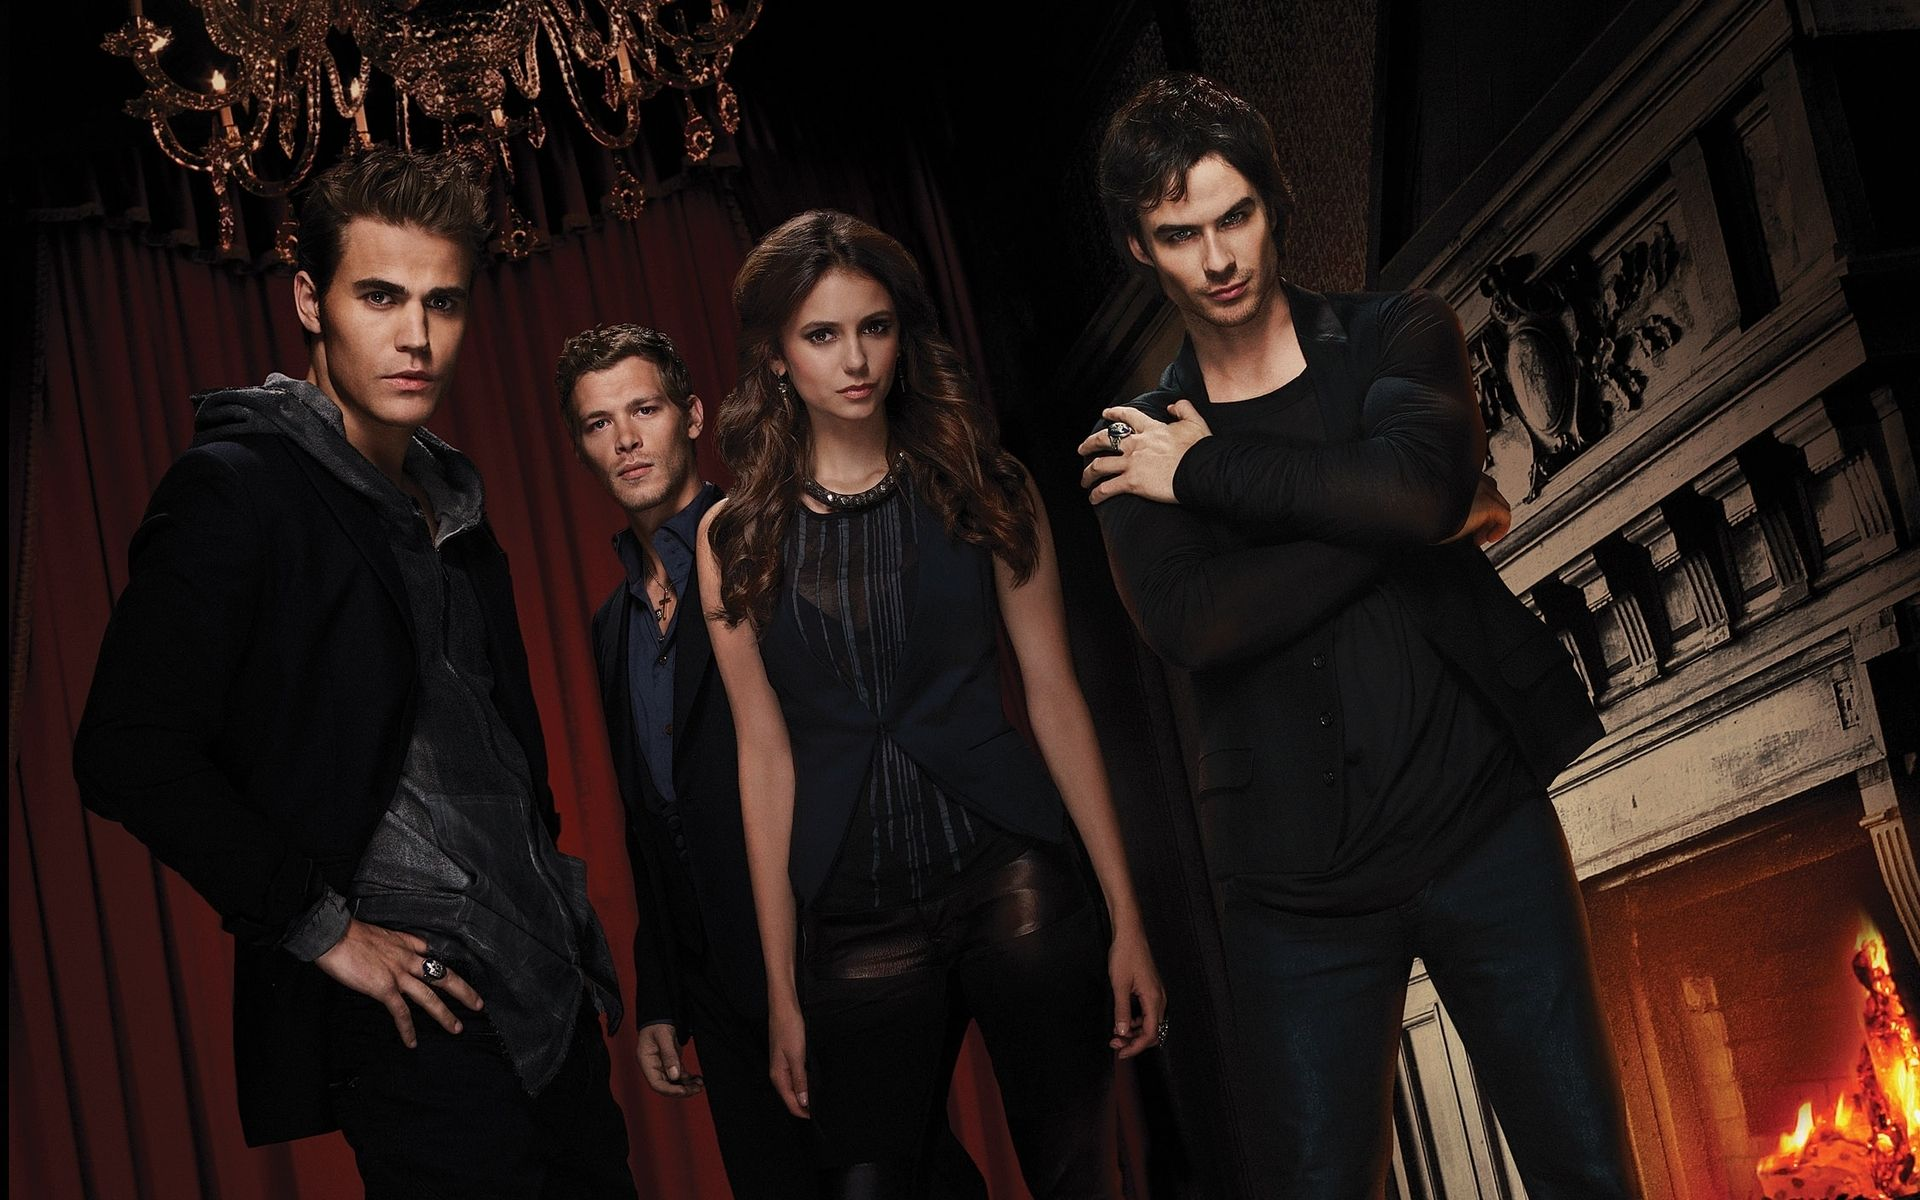 Vampire Diaries Wallpaper 12136 1920x1200 px ~ HDWallSource.com